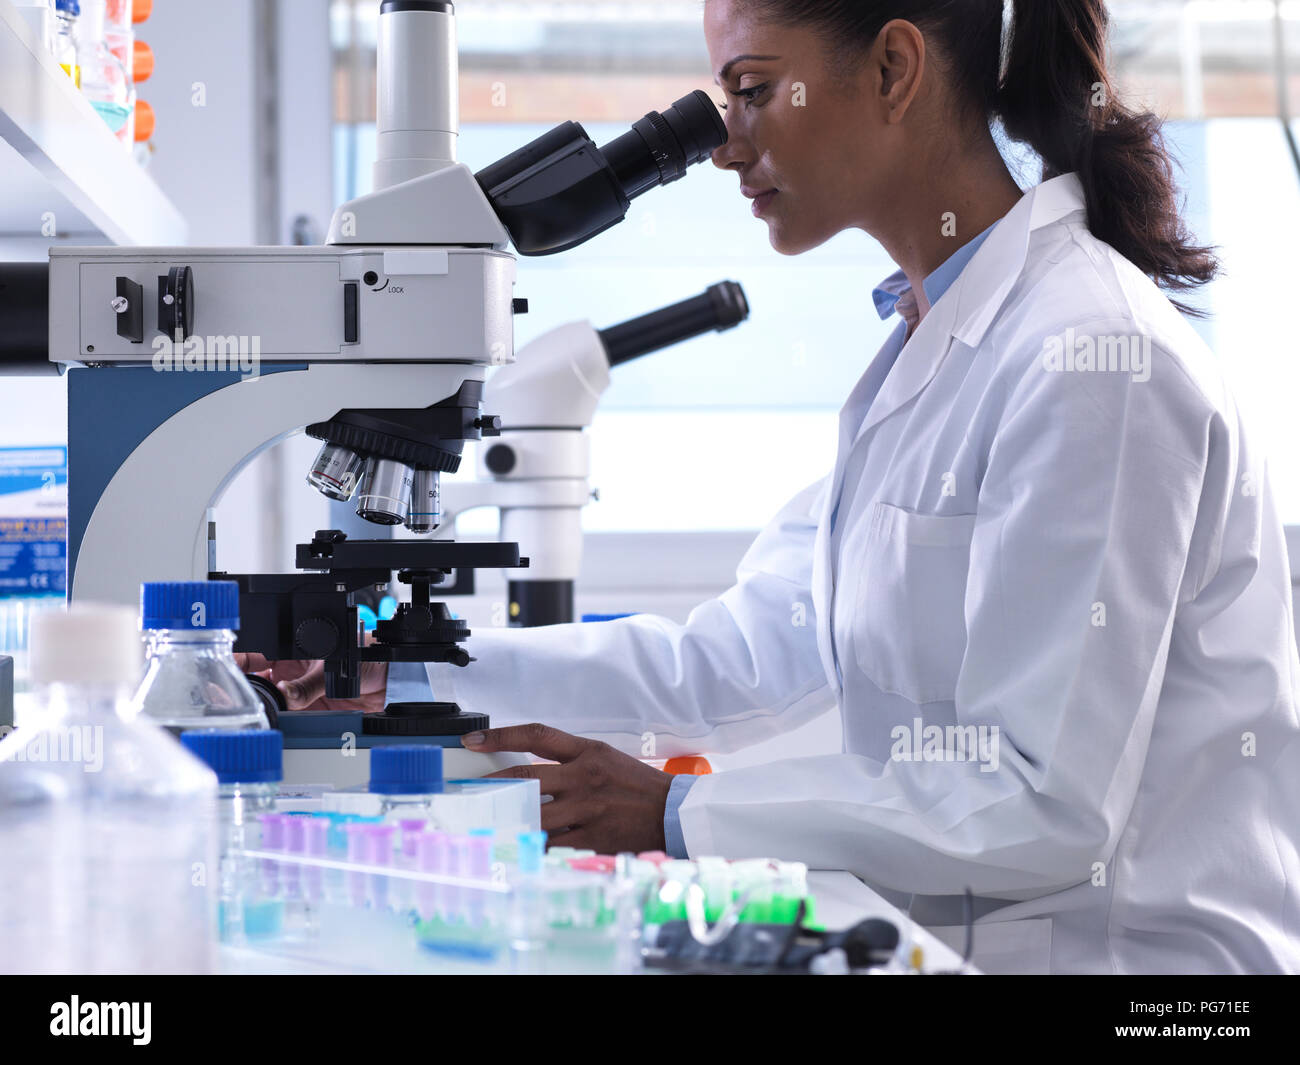 Female scientist examining a human sample on a glass slide under a microscope in the laboratory - Stock Image